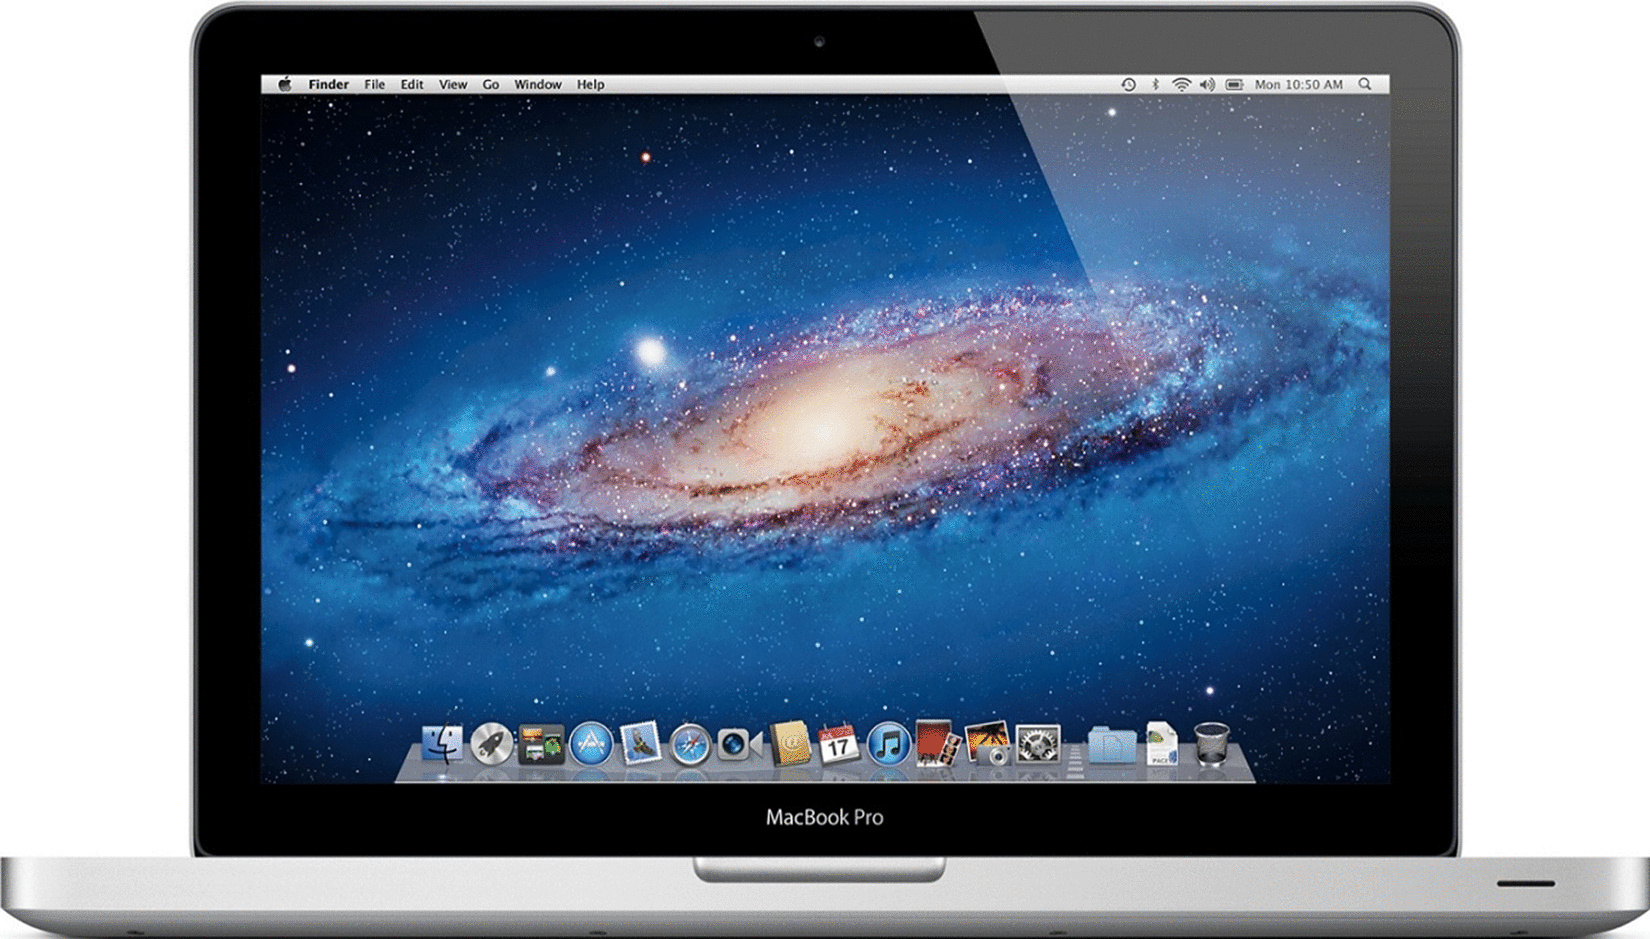 Apple MacBook Pro 13.3 (Glossy) 2.3 GHz Intel Core i5 4 GB RAM 320 GB HDD (5400 U/Min.) [Early 2011]